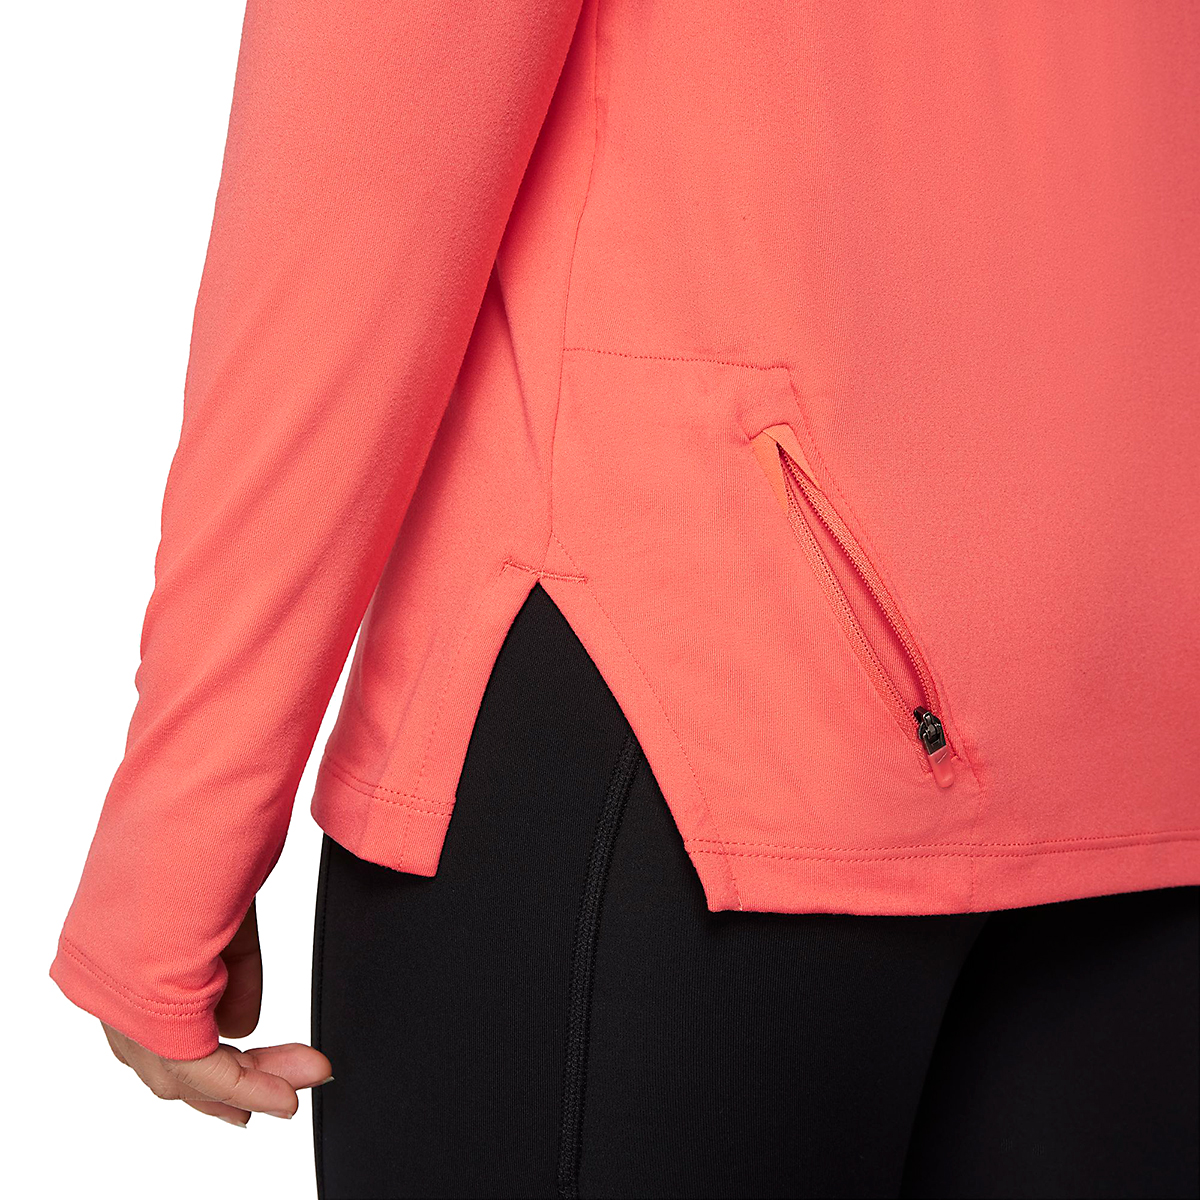 Women's Nike Element Trail Running Midlayer - Color: Magic Ember/Reflective Silver - Size: XS, Magic Ember/Reflective Silver, large, image 6